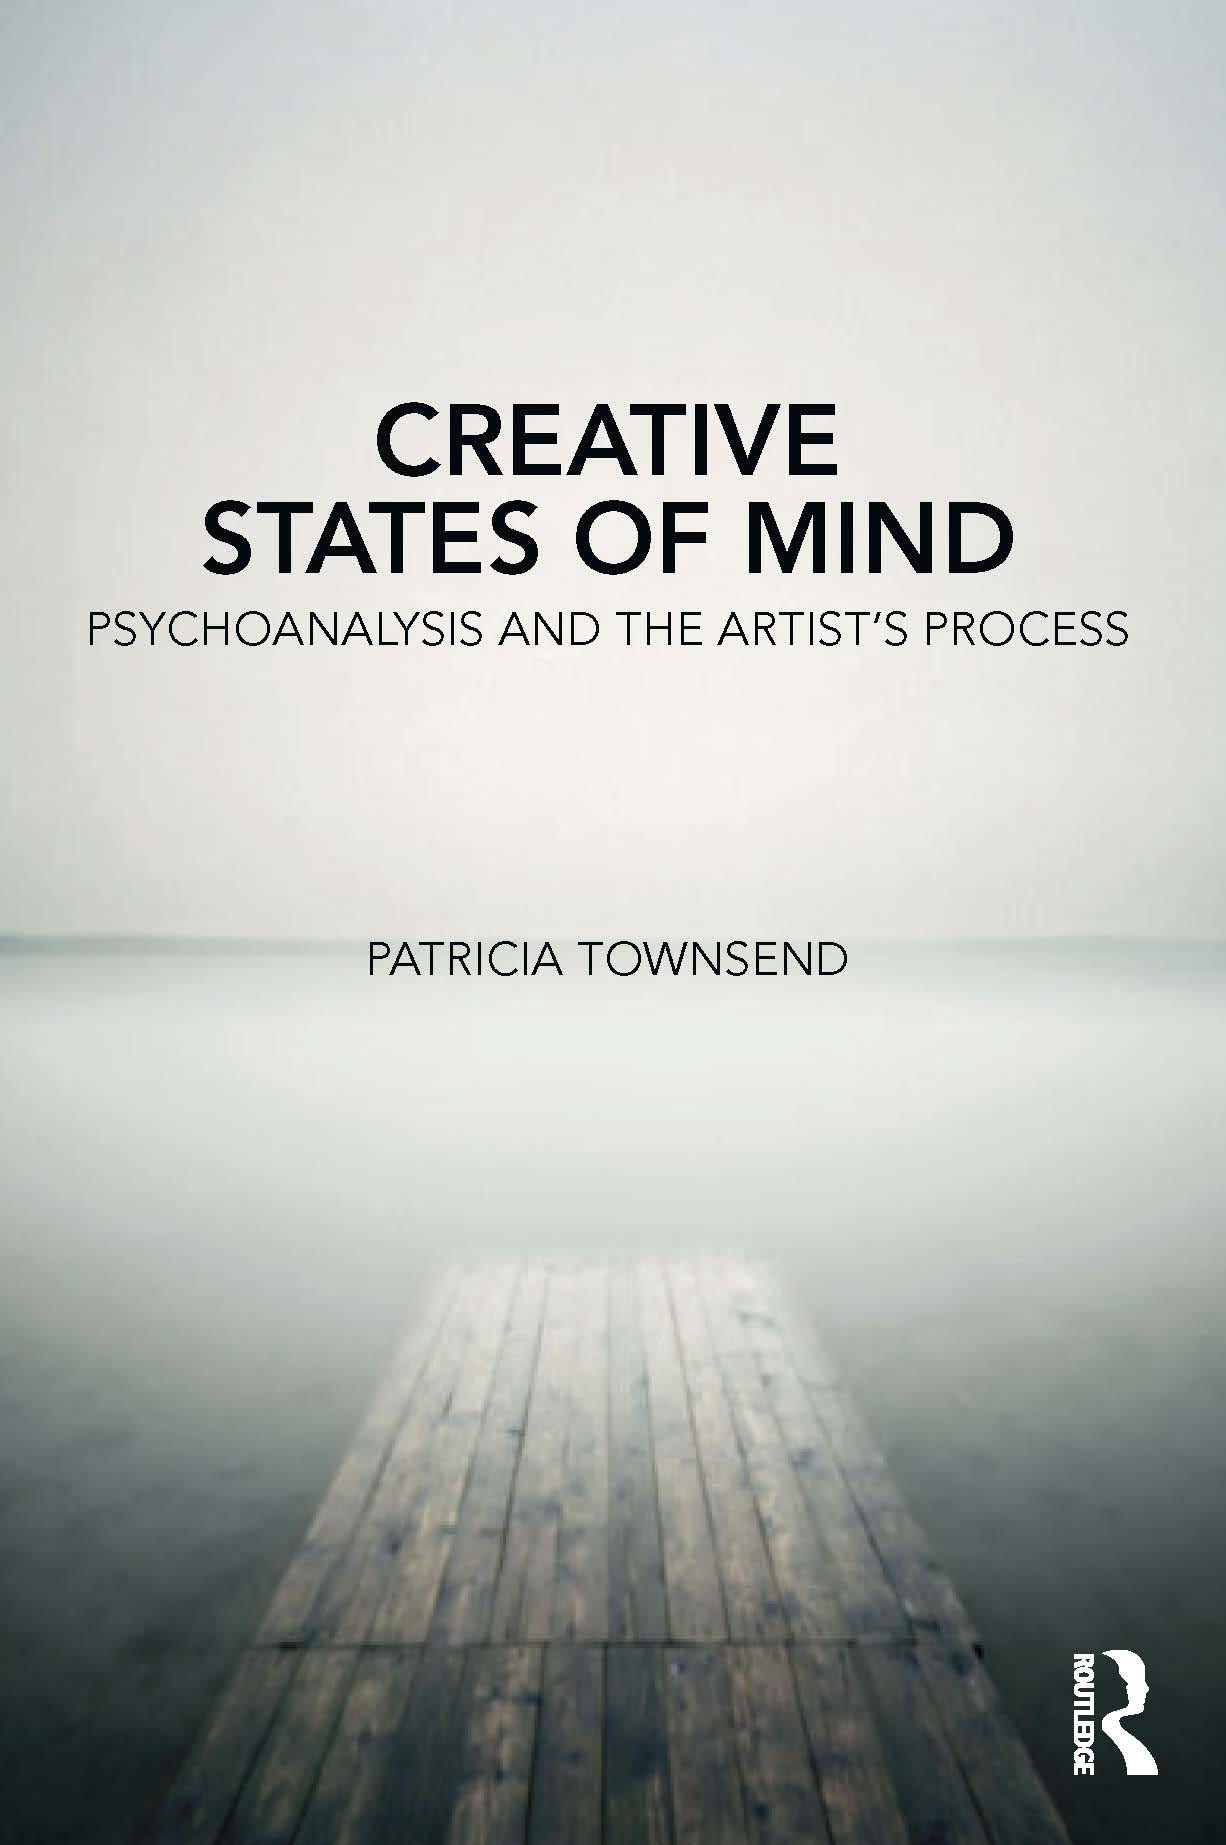 Creative States of Mind: Psychoanalysis & The Artist's Process